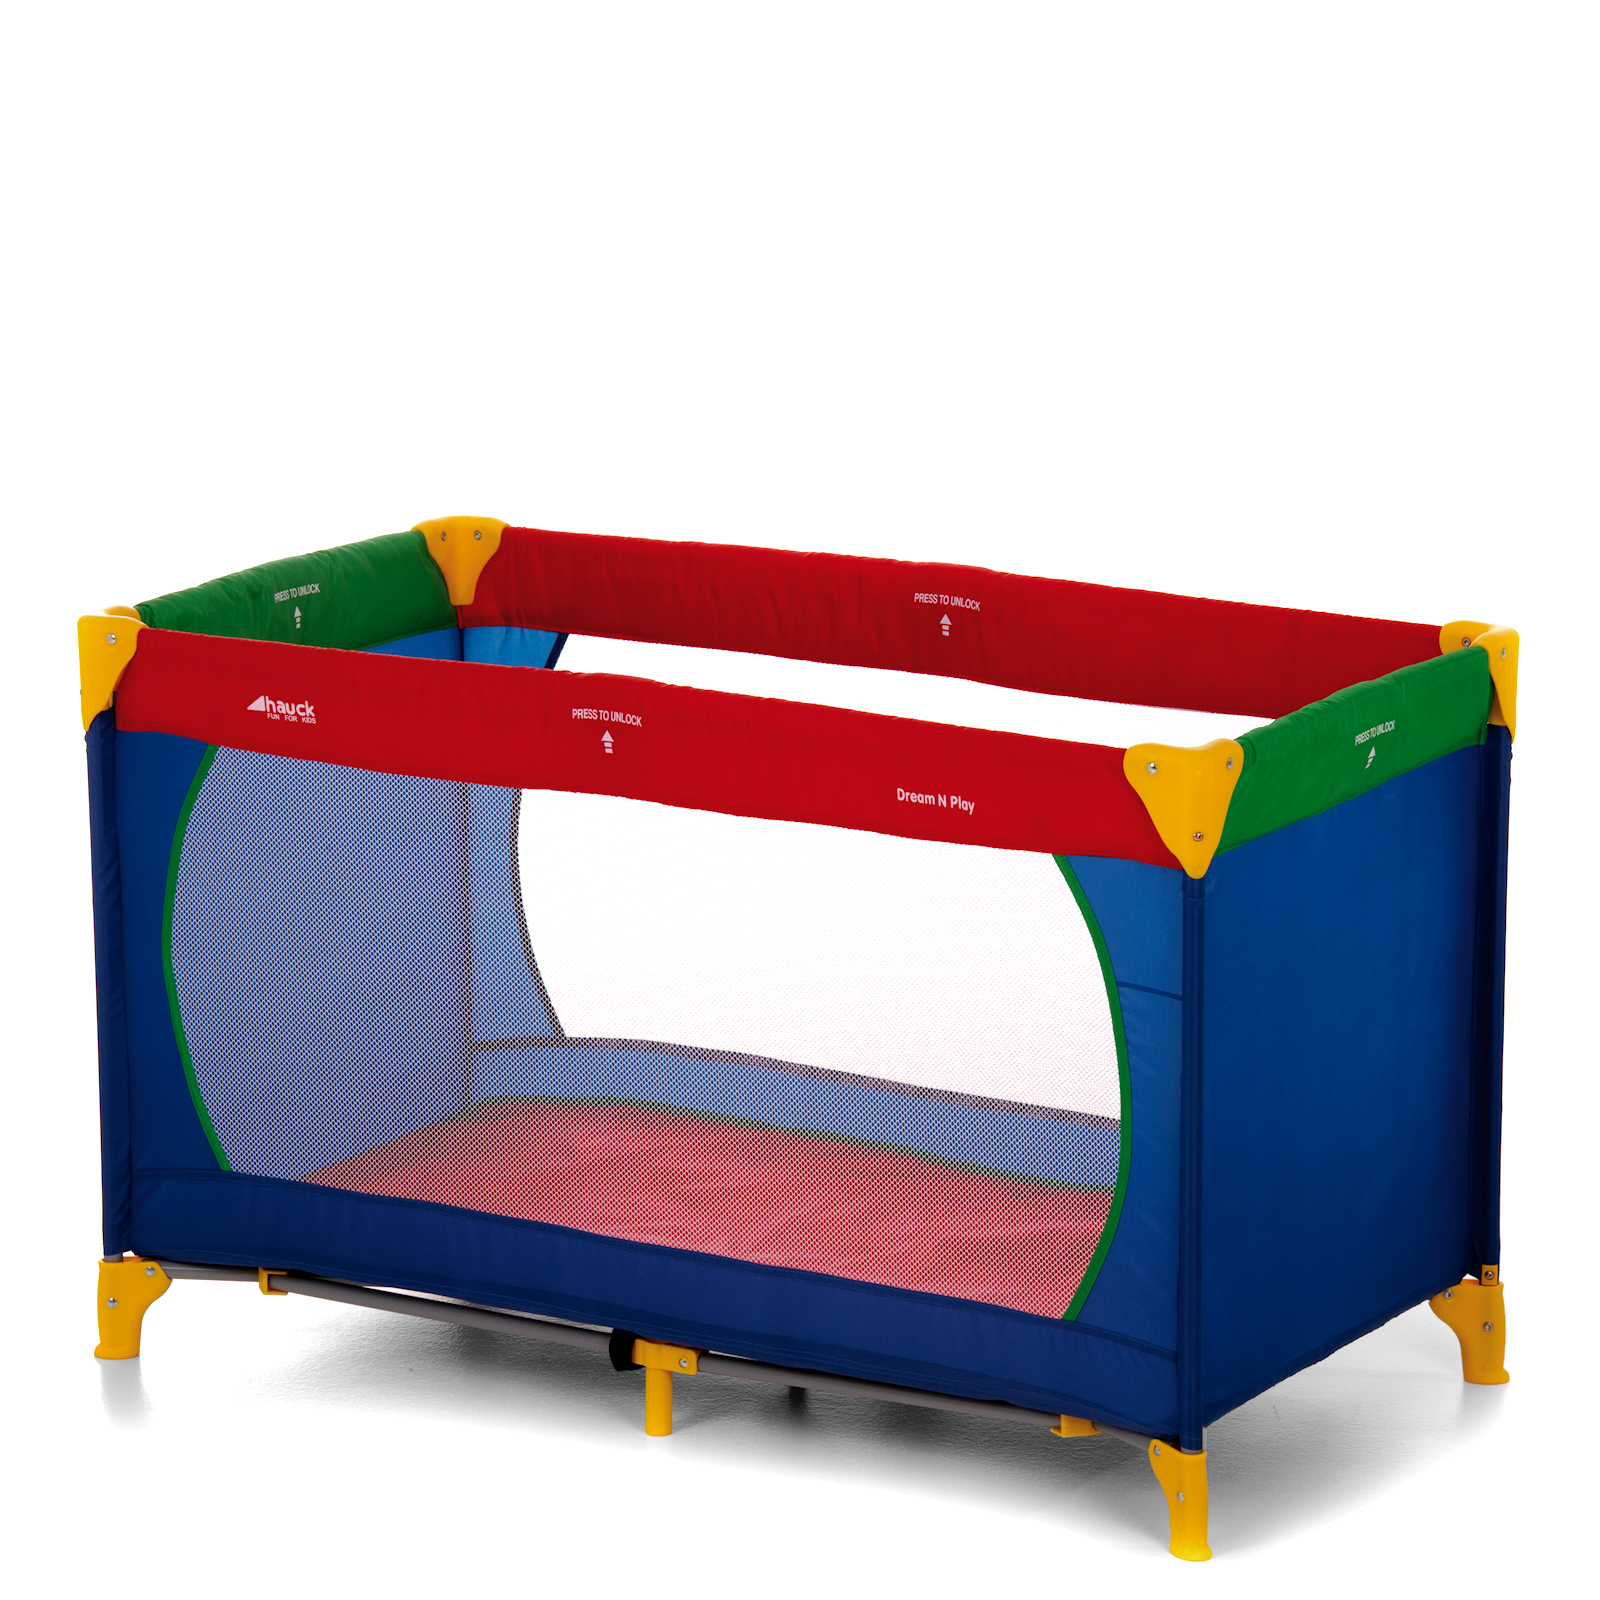 Hauck Dream n Play Travel Cot Baby Playpen Multicolour